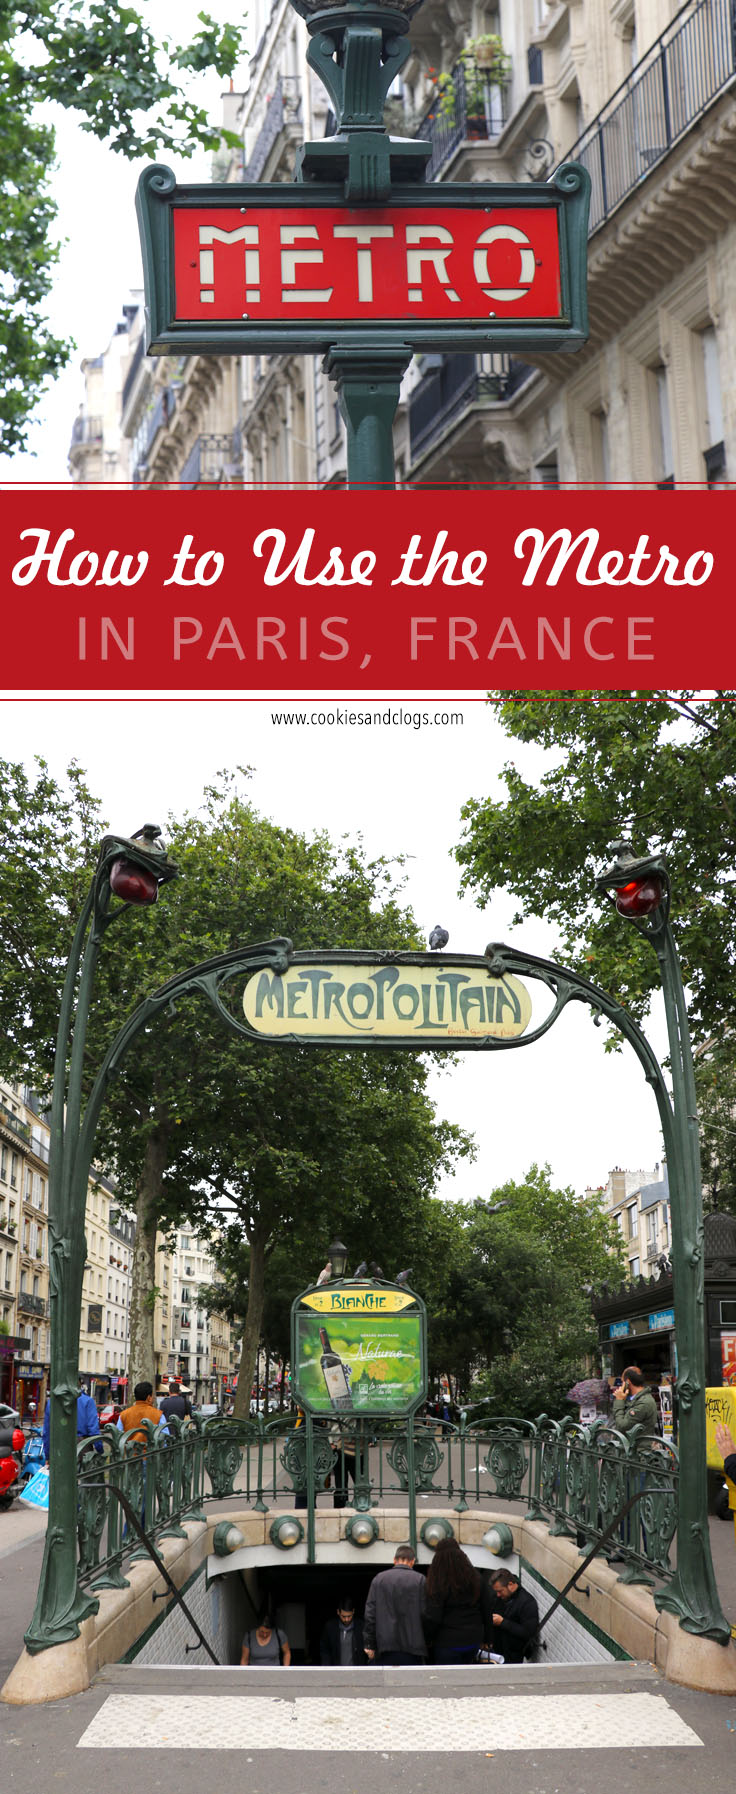 Paris Travel Guide: How to use Paris Metro & bus public transportation in Paris France w/ photos and video tutorial of how to buy tickets.